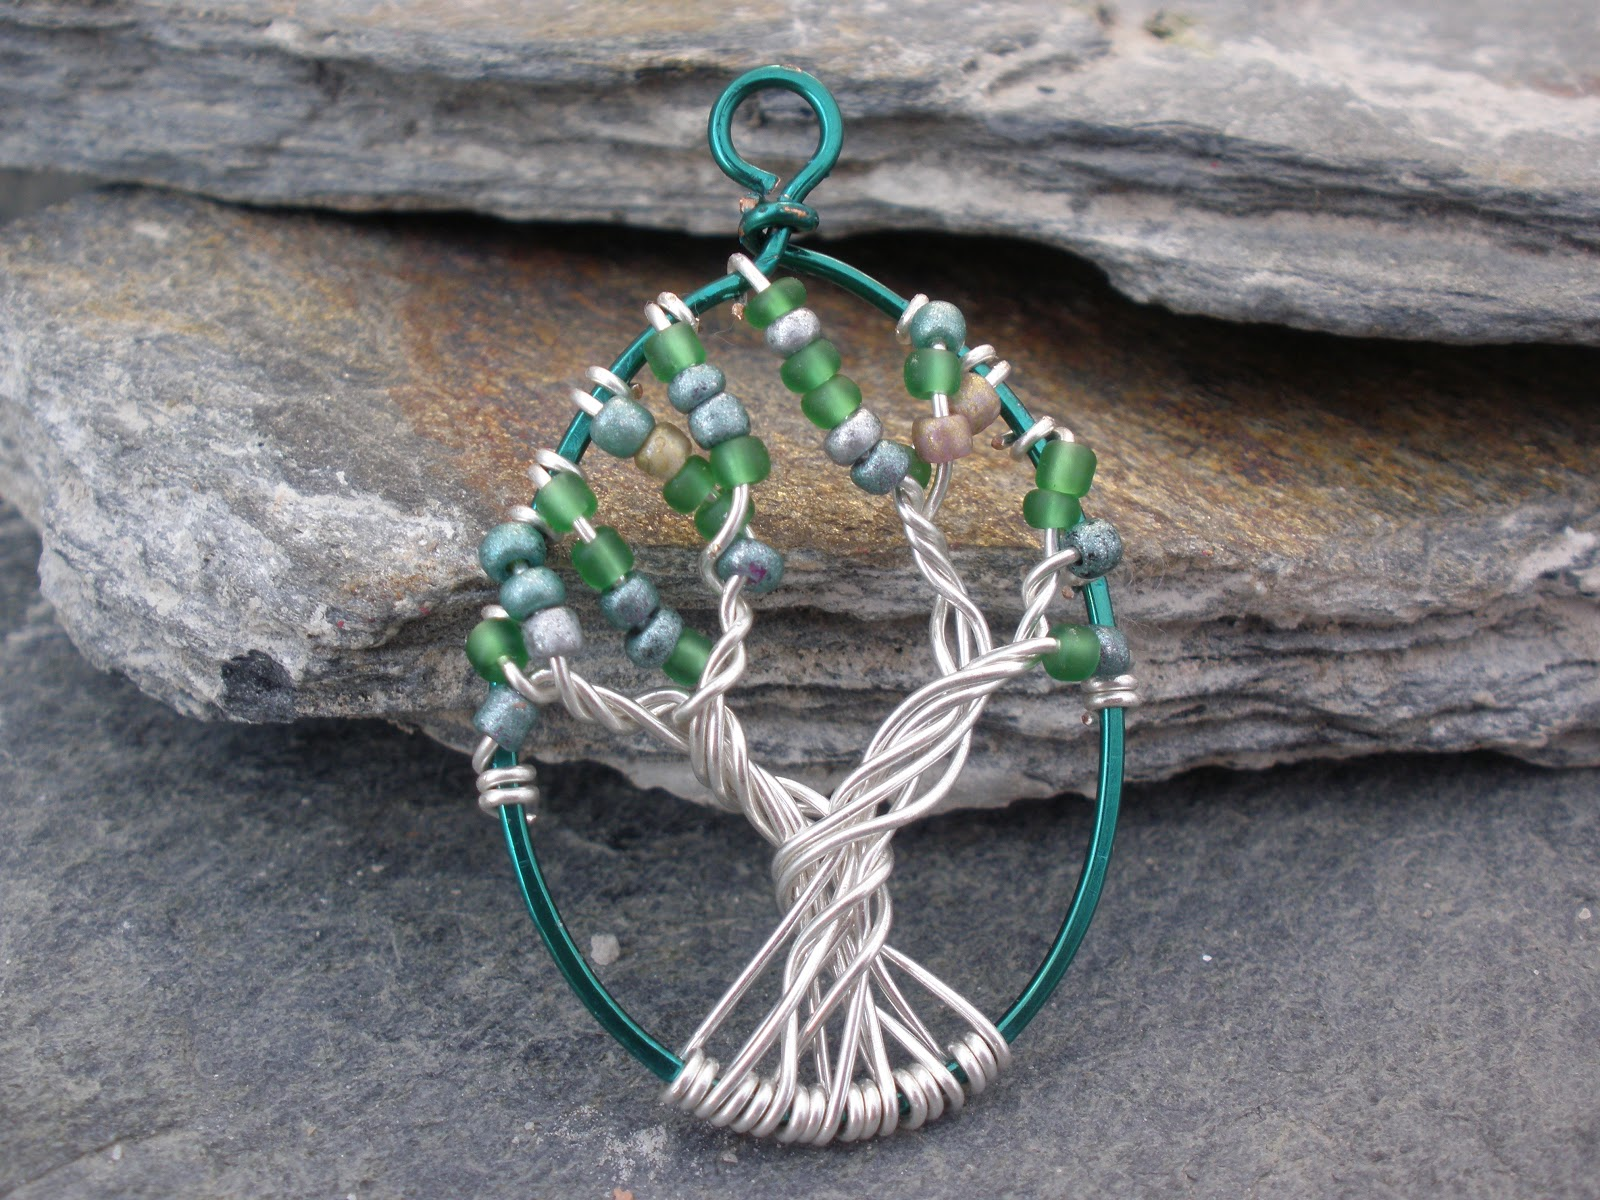 Chloe Louise Handmade Jewellery: How to: Make a Tree of Life Pendant